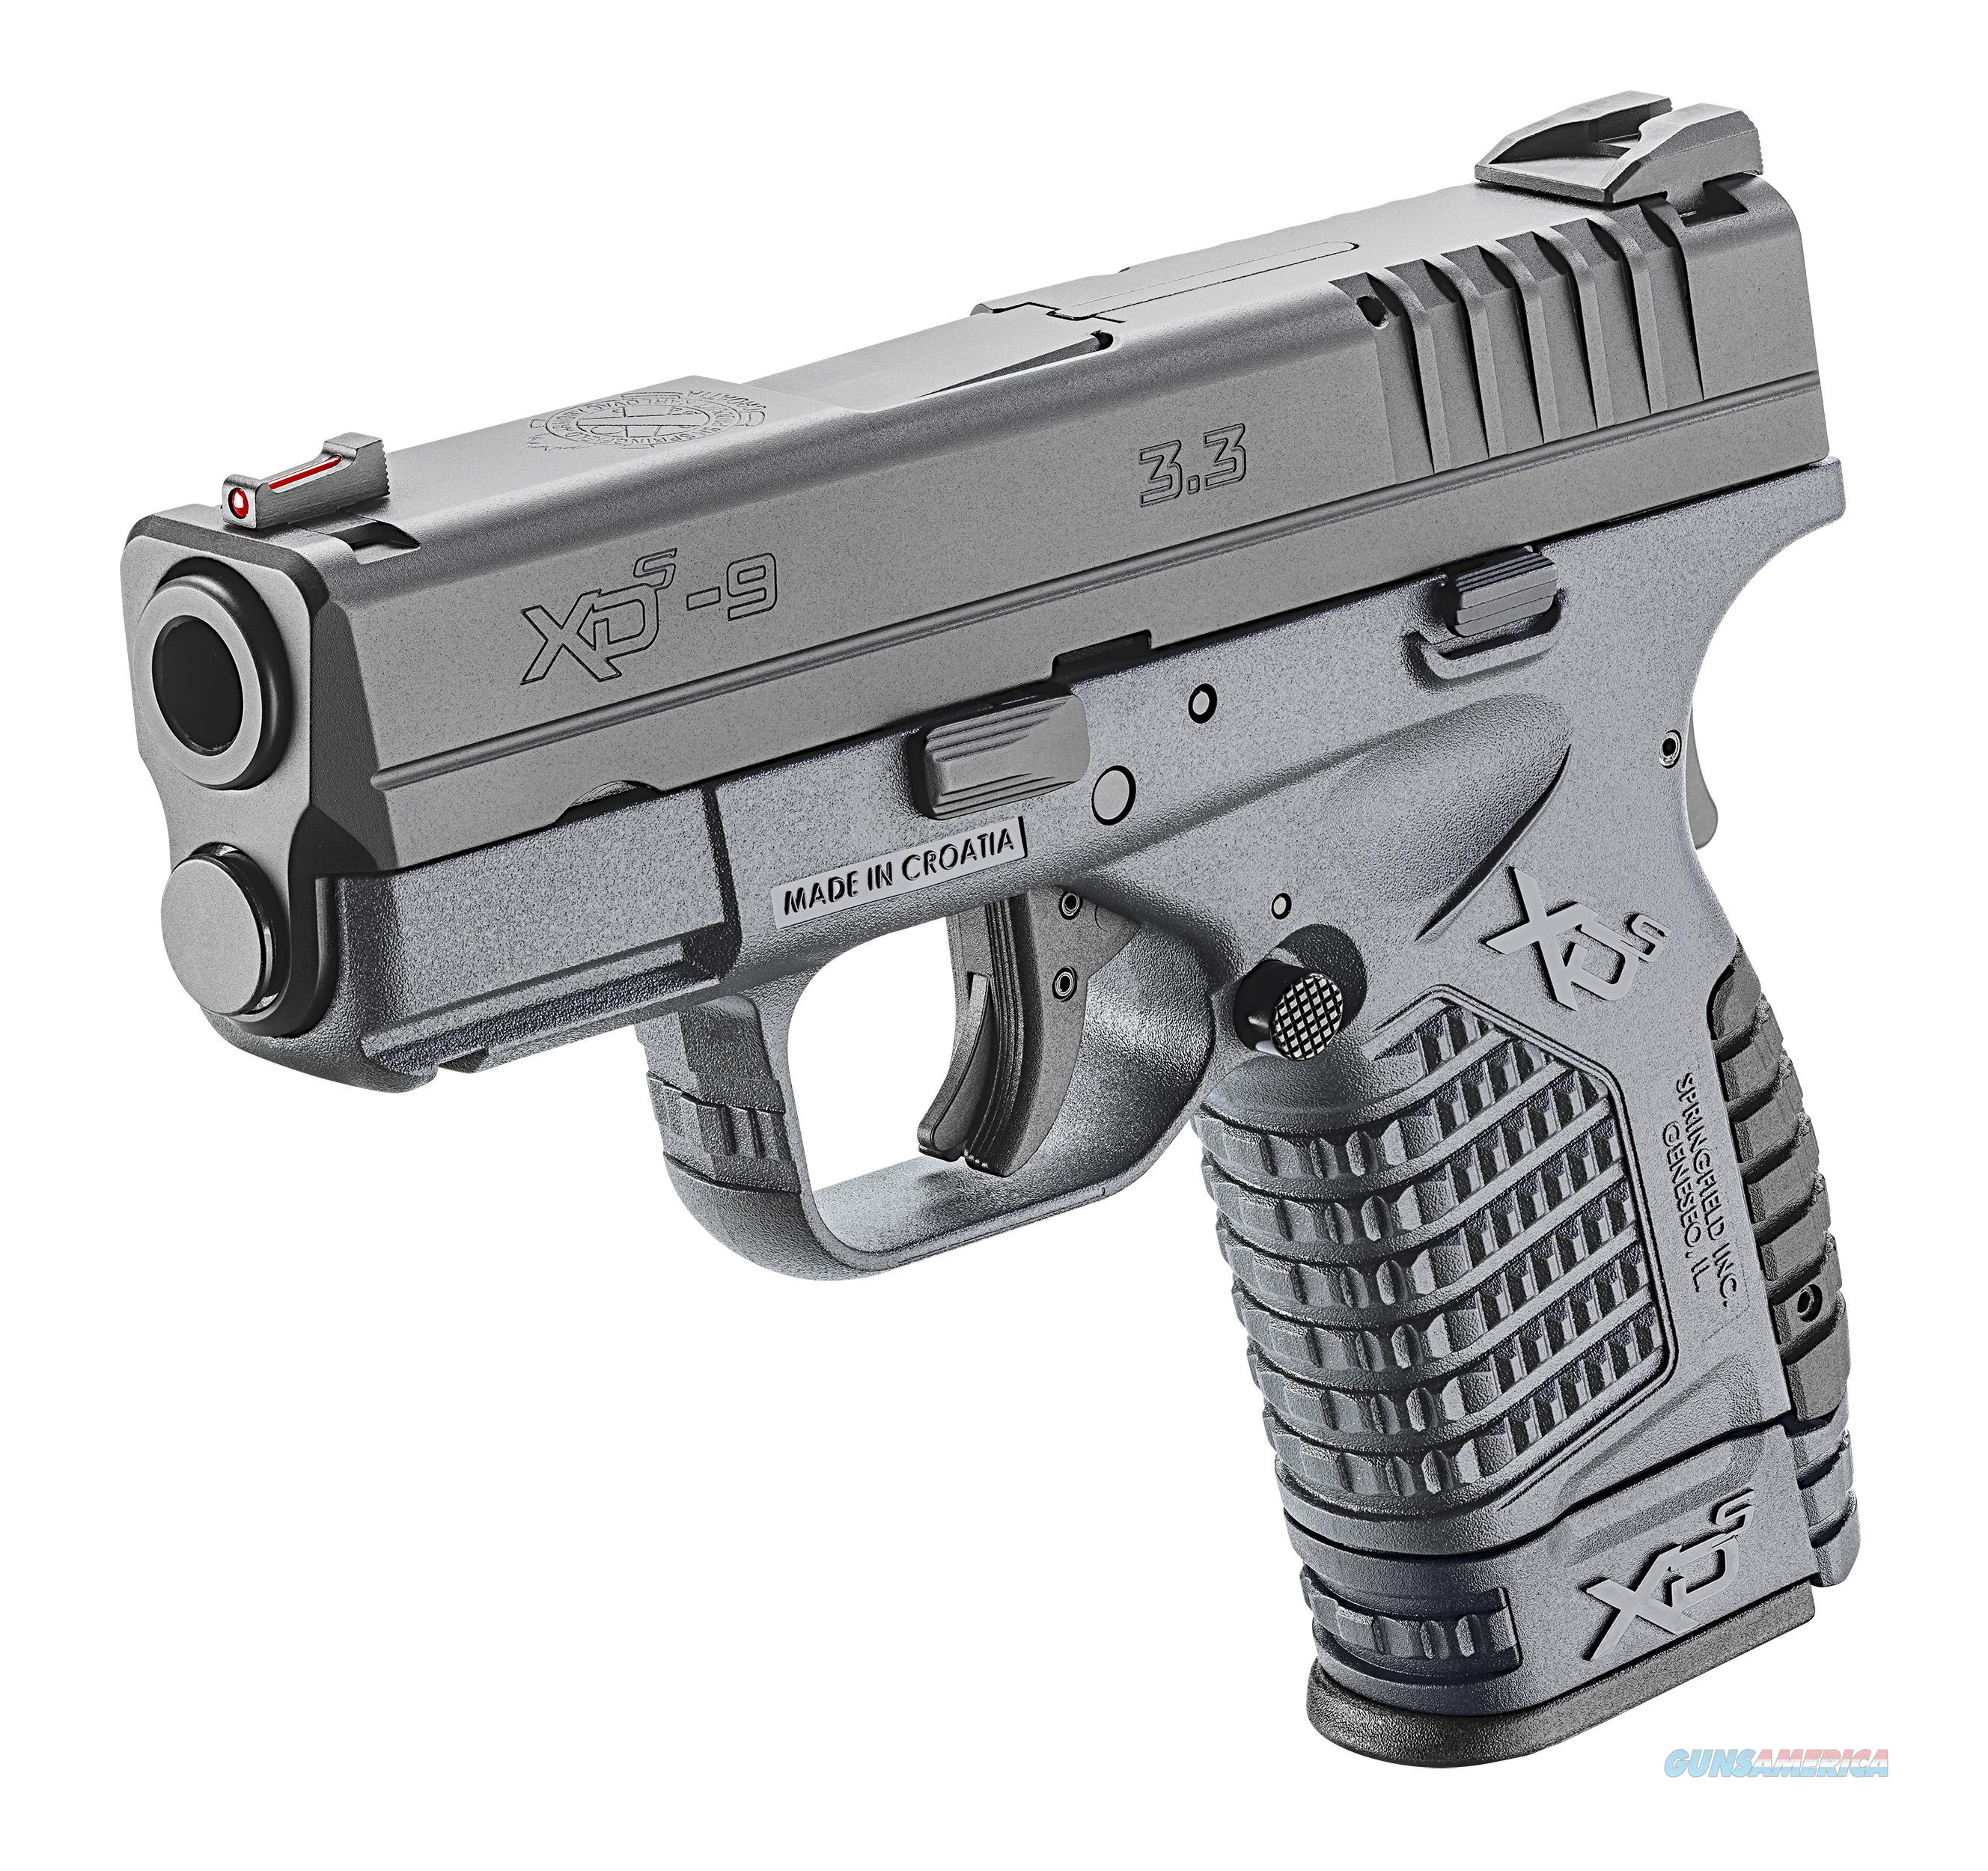 "Springfield XD-S 9mm 3.3"" 7+1/8+1 - Tactical Gray - New in Case  Guns > Pistols > Springfield Armory Pistols > XD-S"